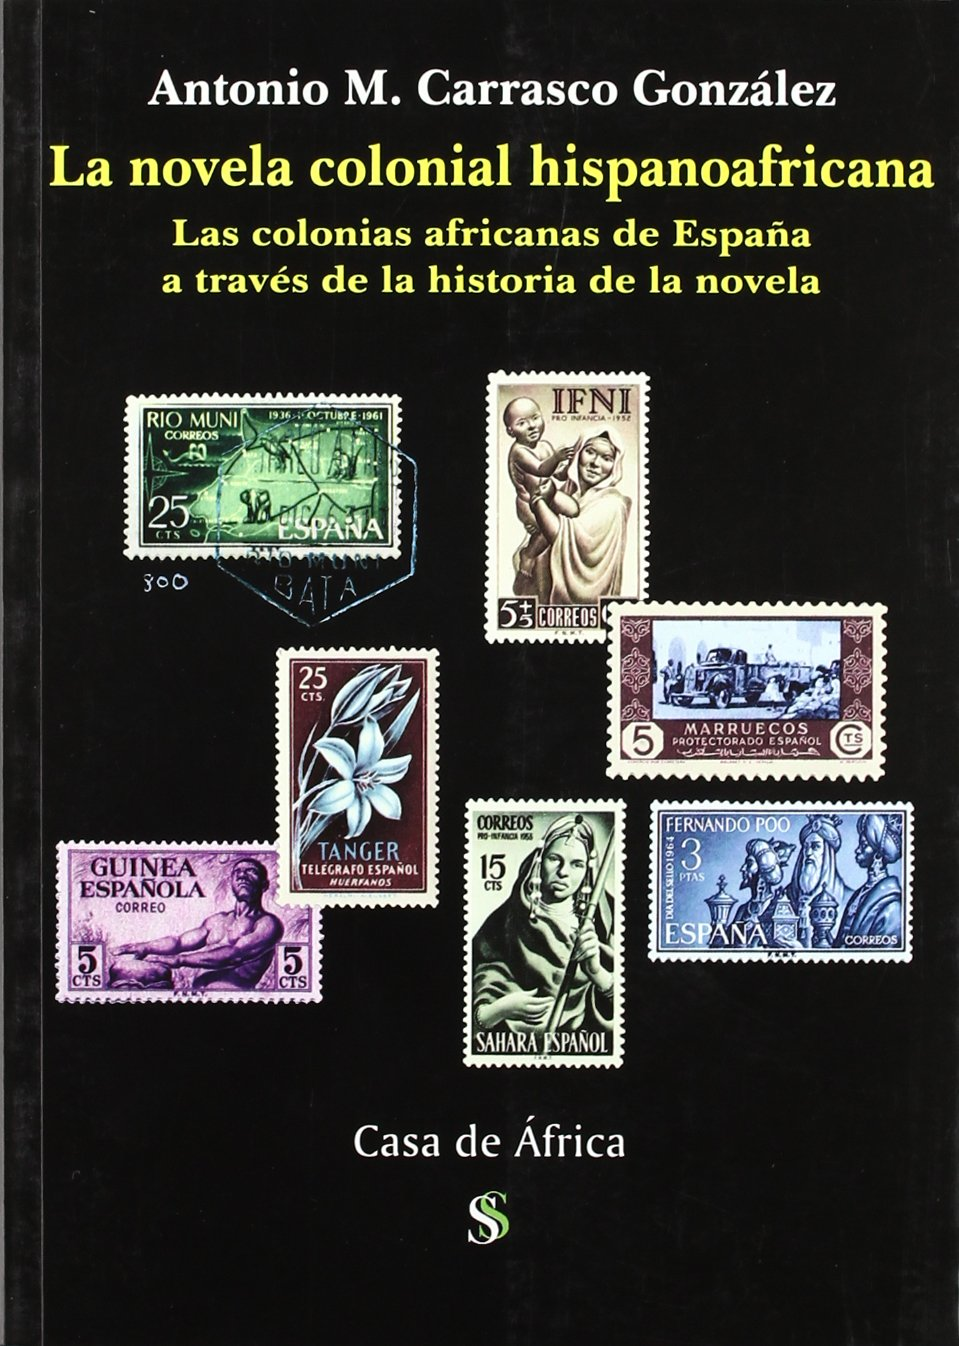 Novela colonial hispanoafricana, la: Amazon.es: Antonio Carrasco González: Libros